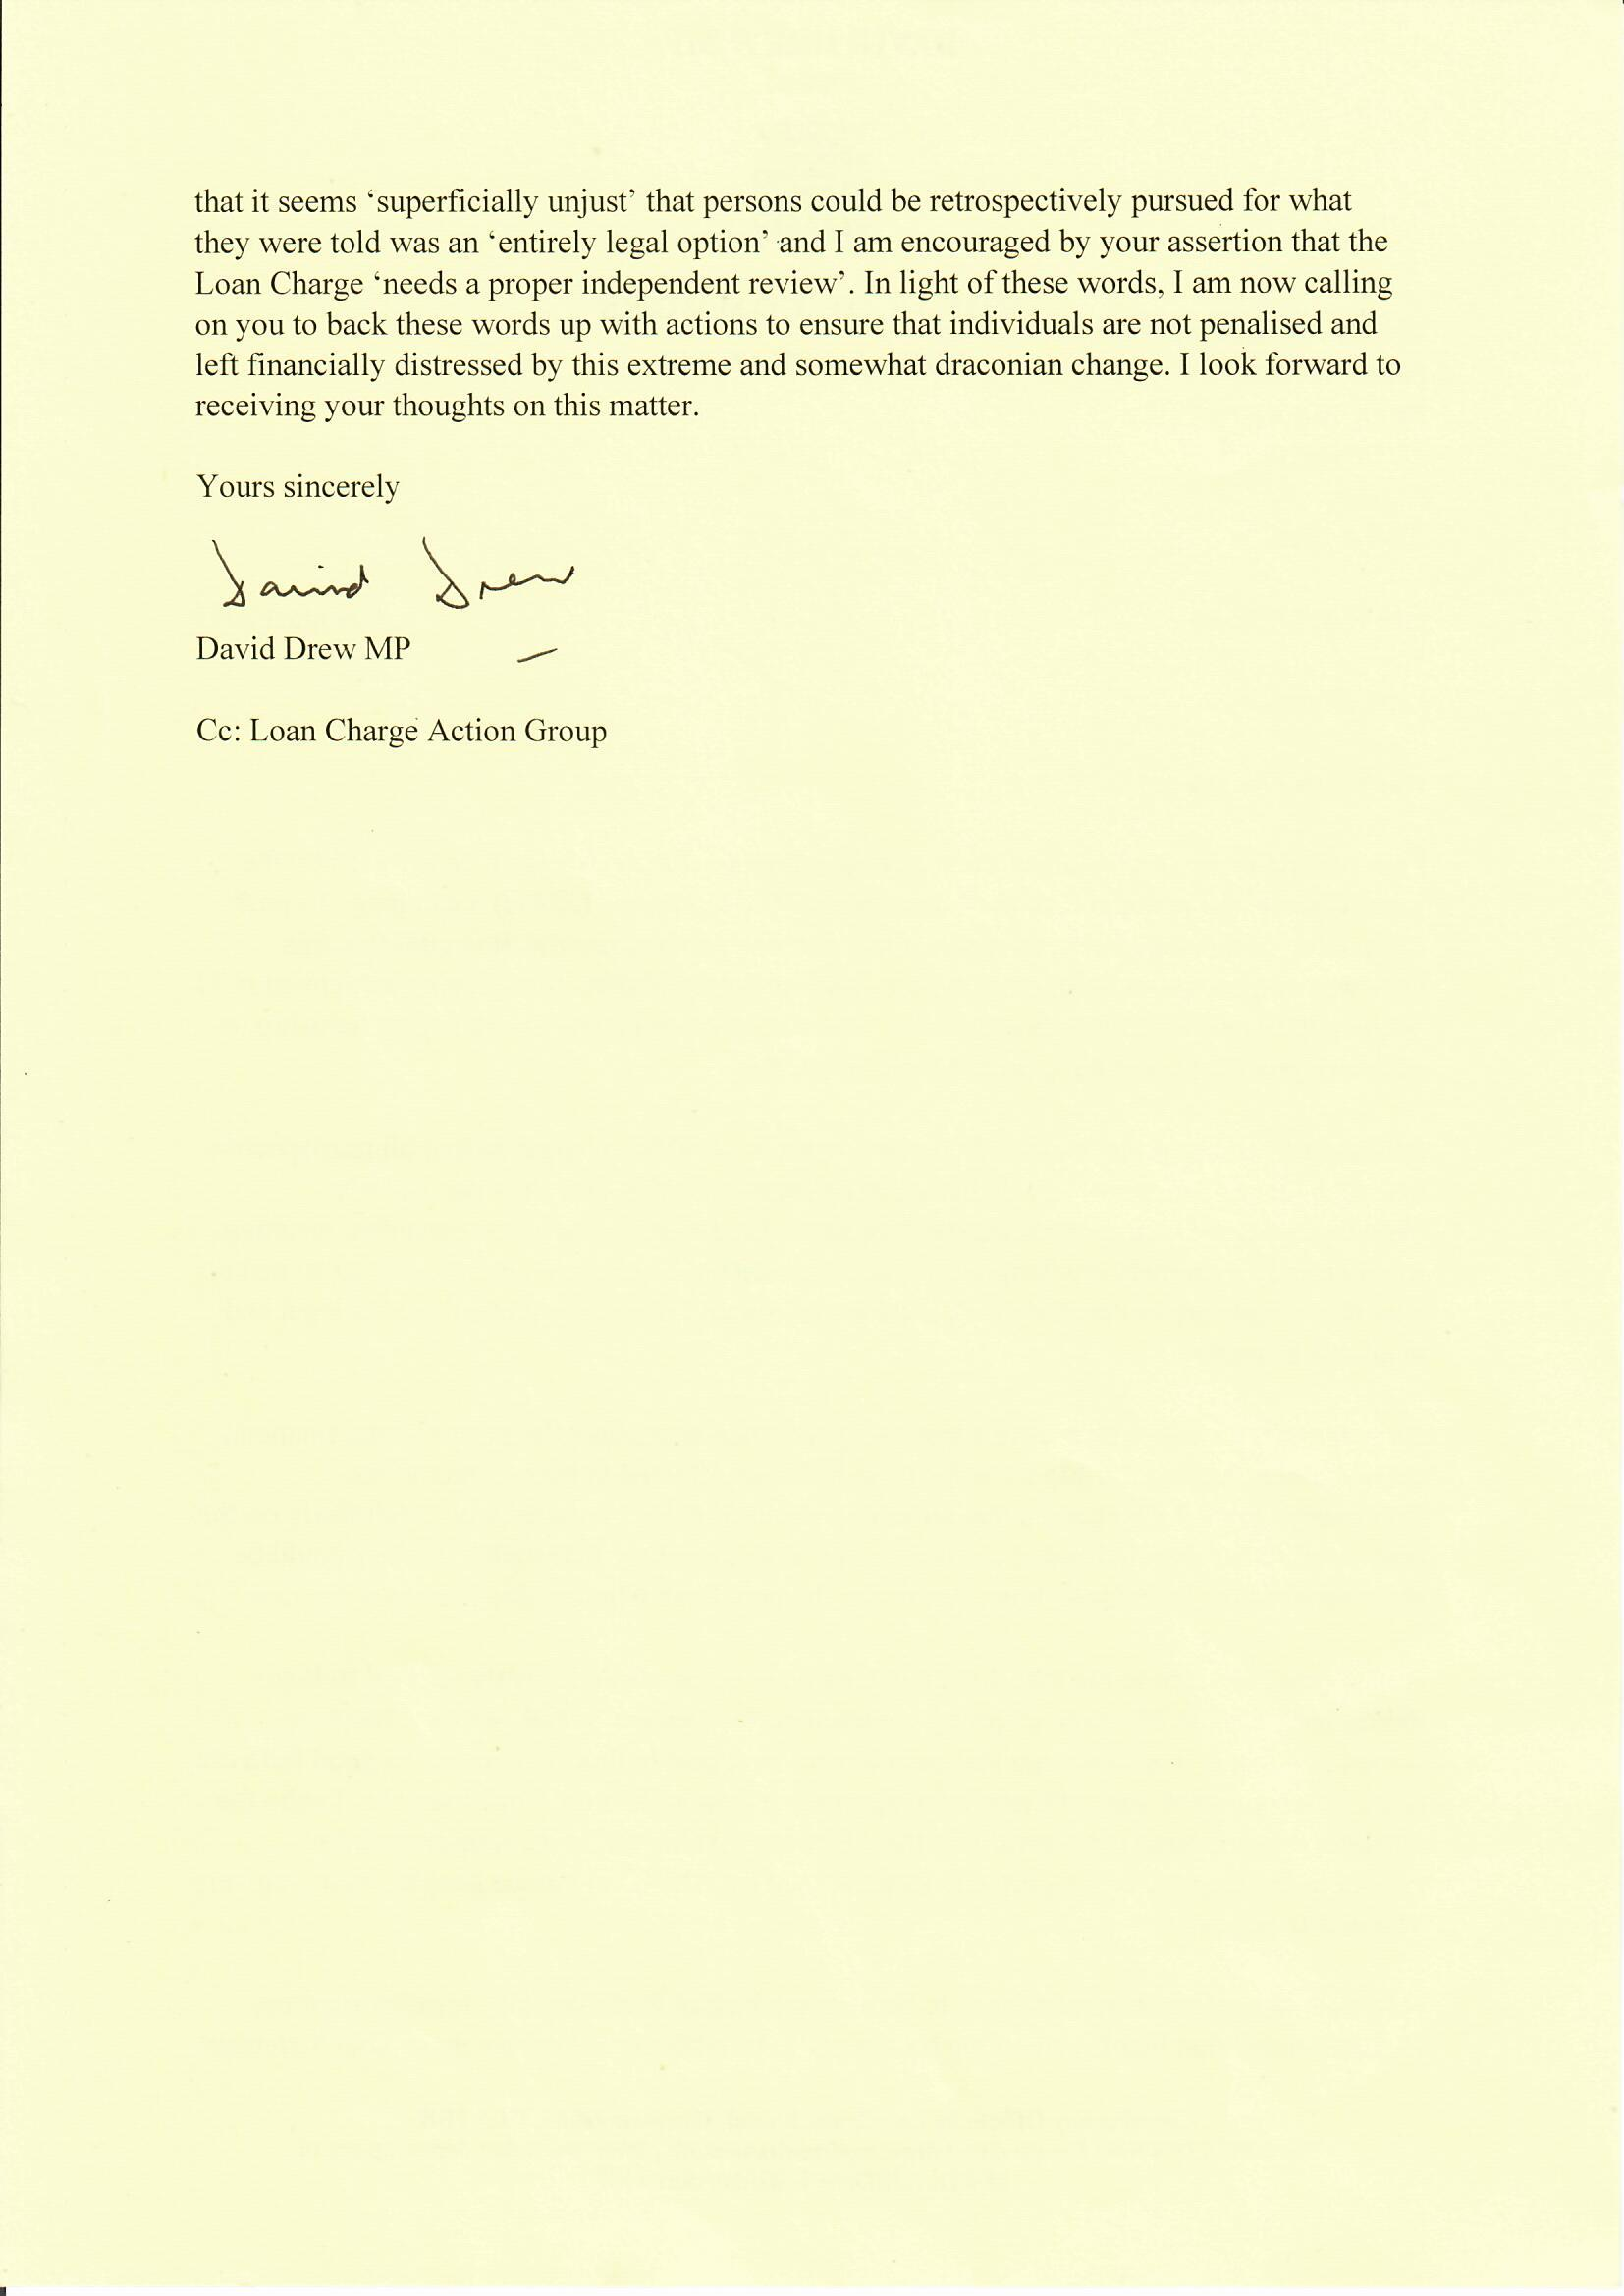 Loan Charge Letter to Boris 2.jpg